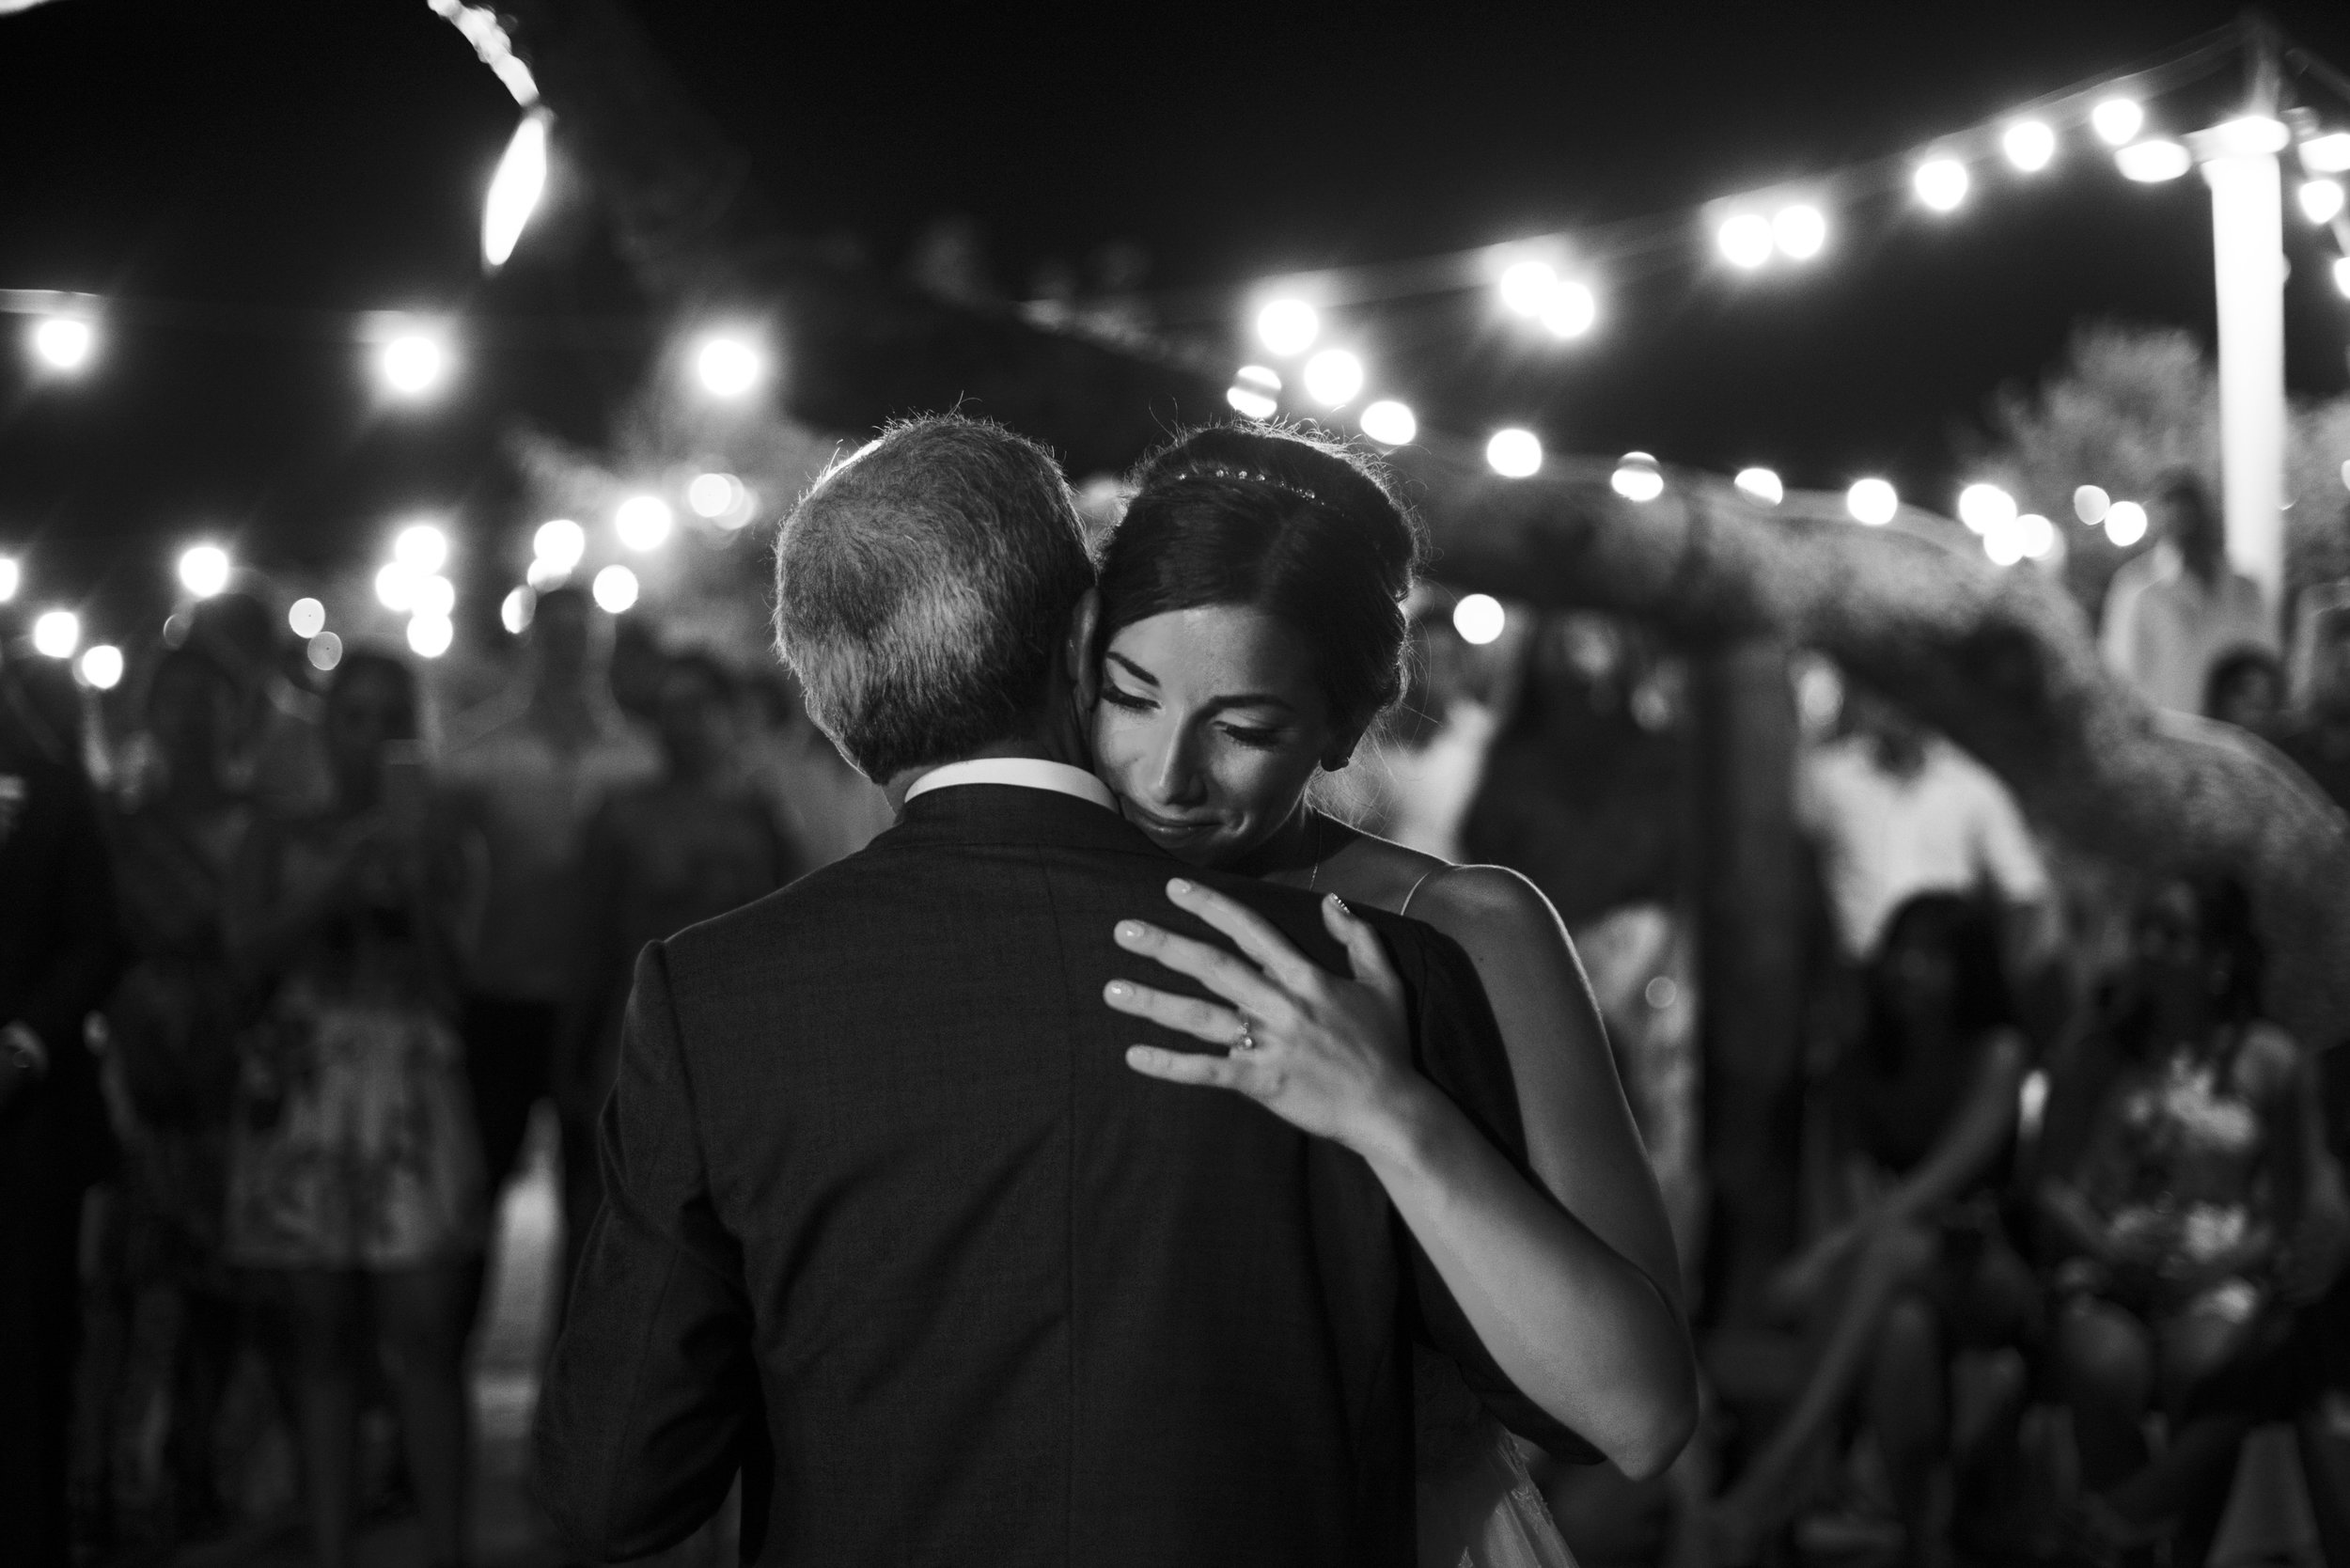 RosewoodWeddingPhotos-DestinationWeddingPhotographer-Greece-Monemvasia-DestinationWedding-WeddingsinGreece-GreekWedding-GreekOrthodoxWedding